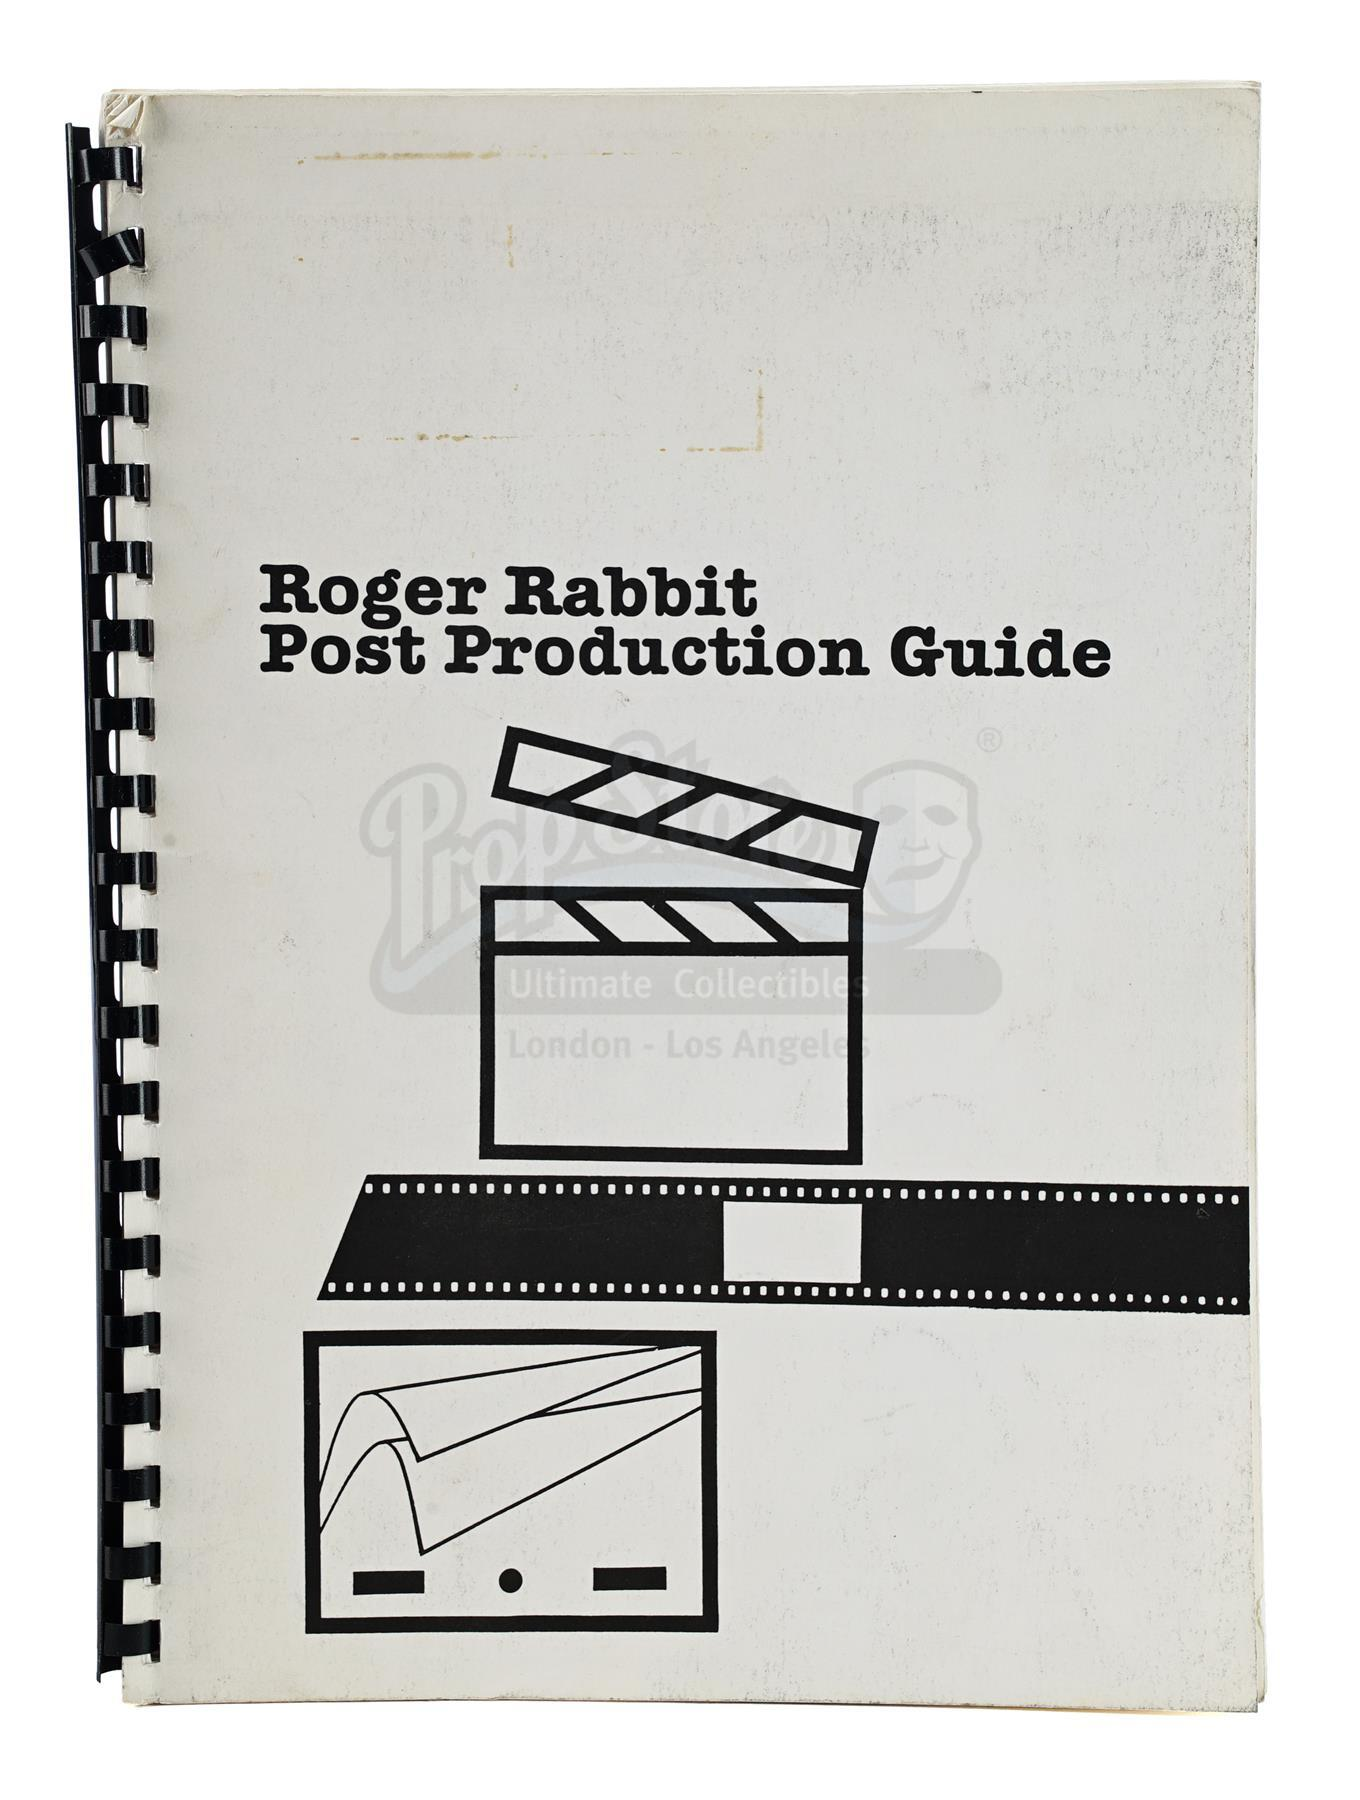 Lot # 1348: WHO FRAMED ROGER RABBIT - Industrial Light & Magic (ILM) Post-Production Guide